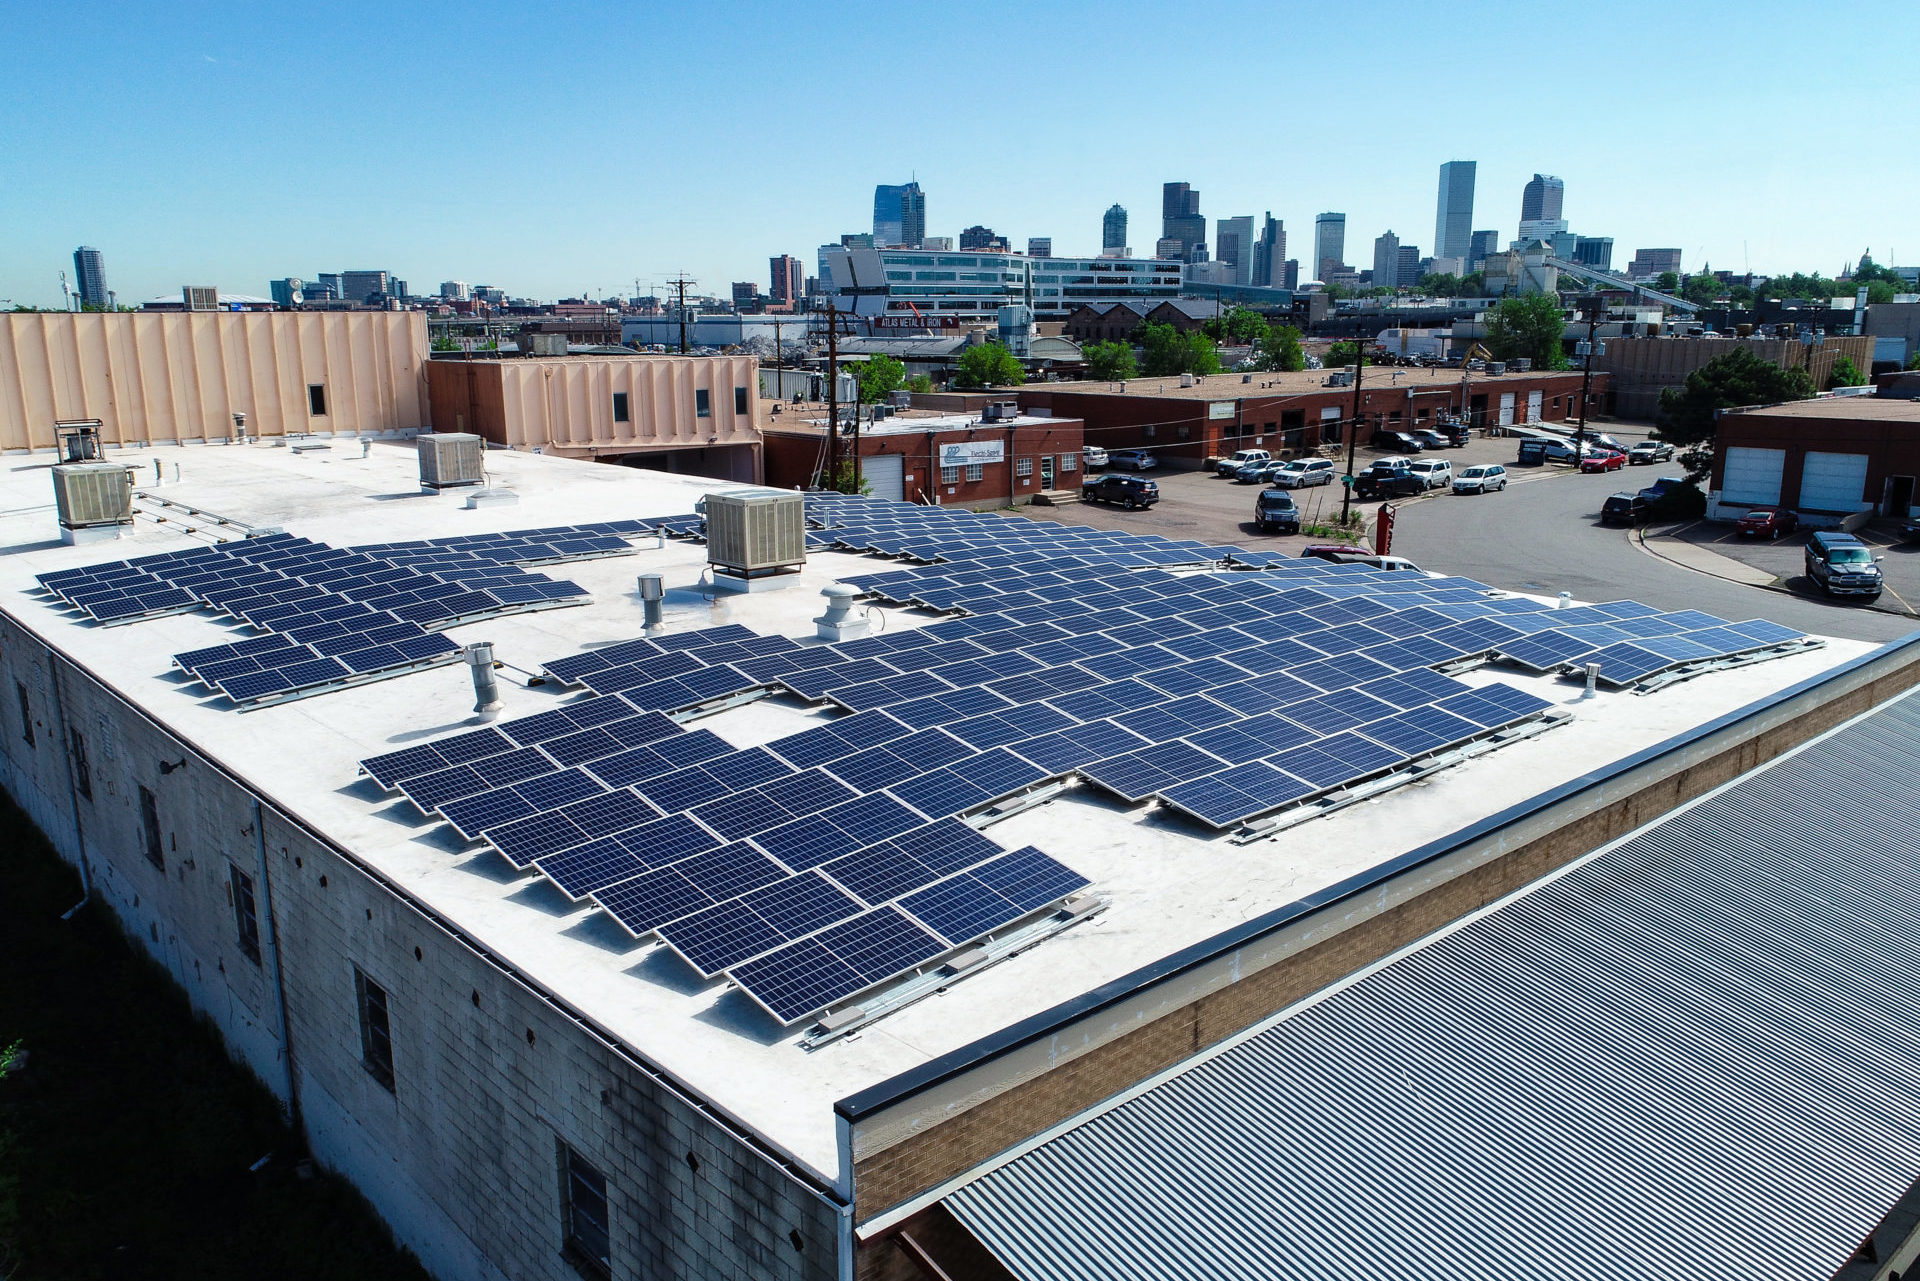 commercial solar panel installation with denver skyline in background